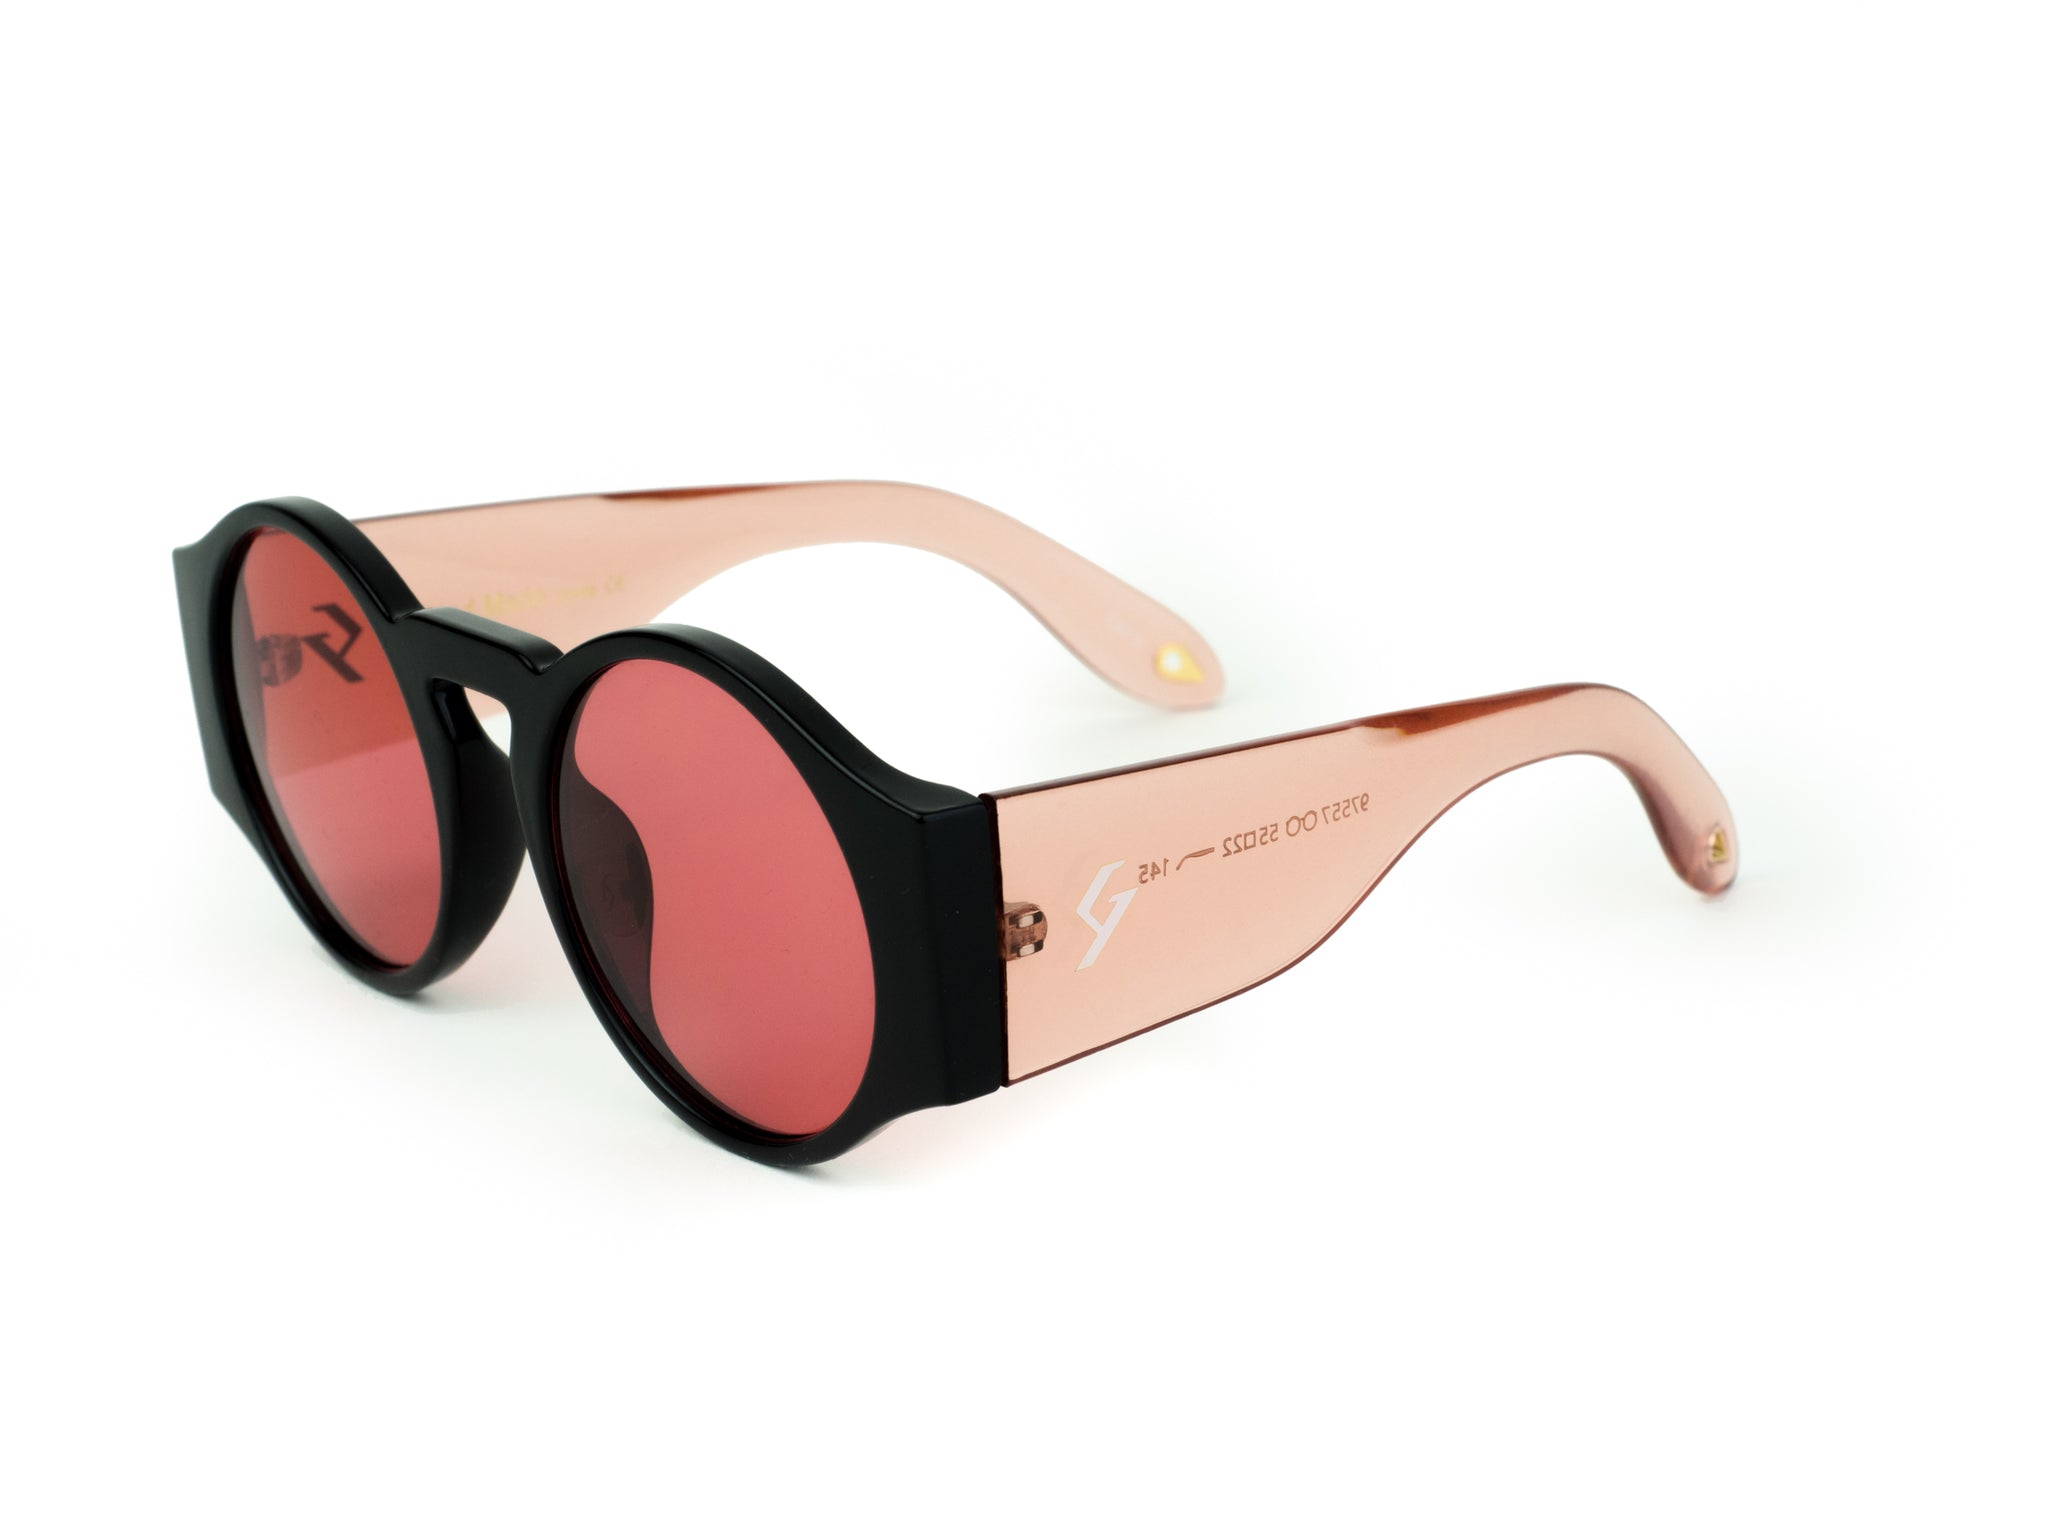 Nova Sunglasses (Red)